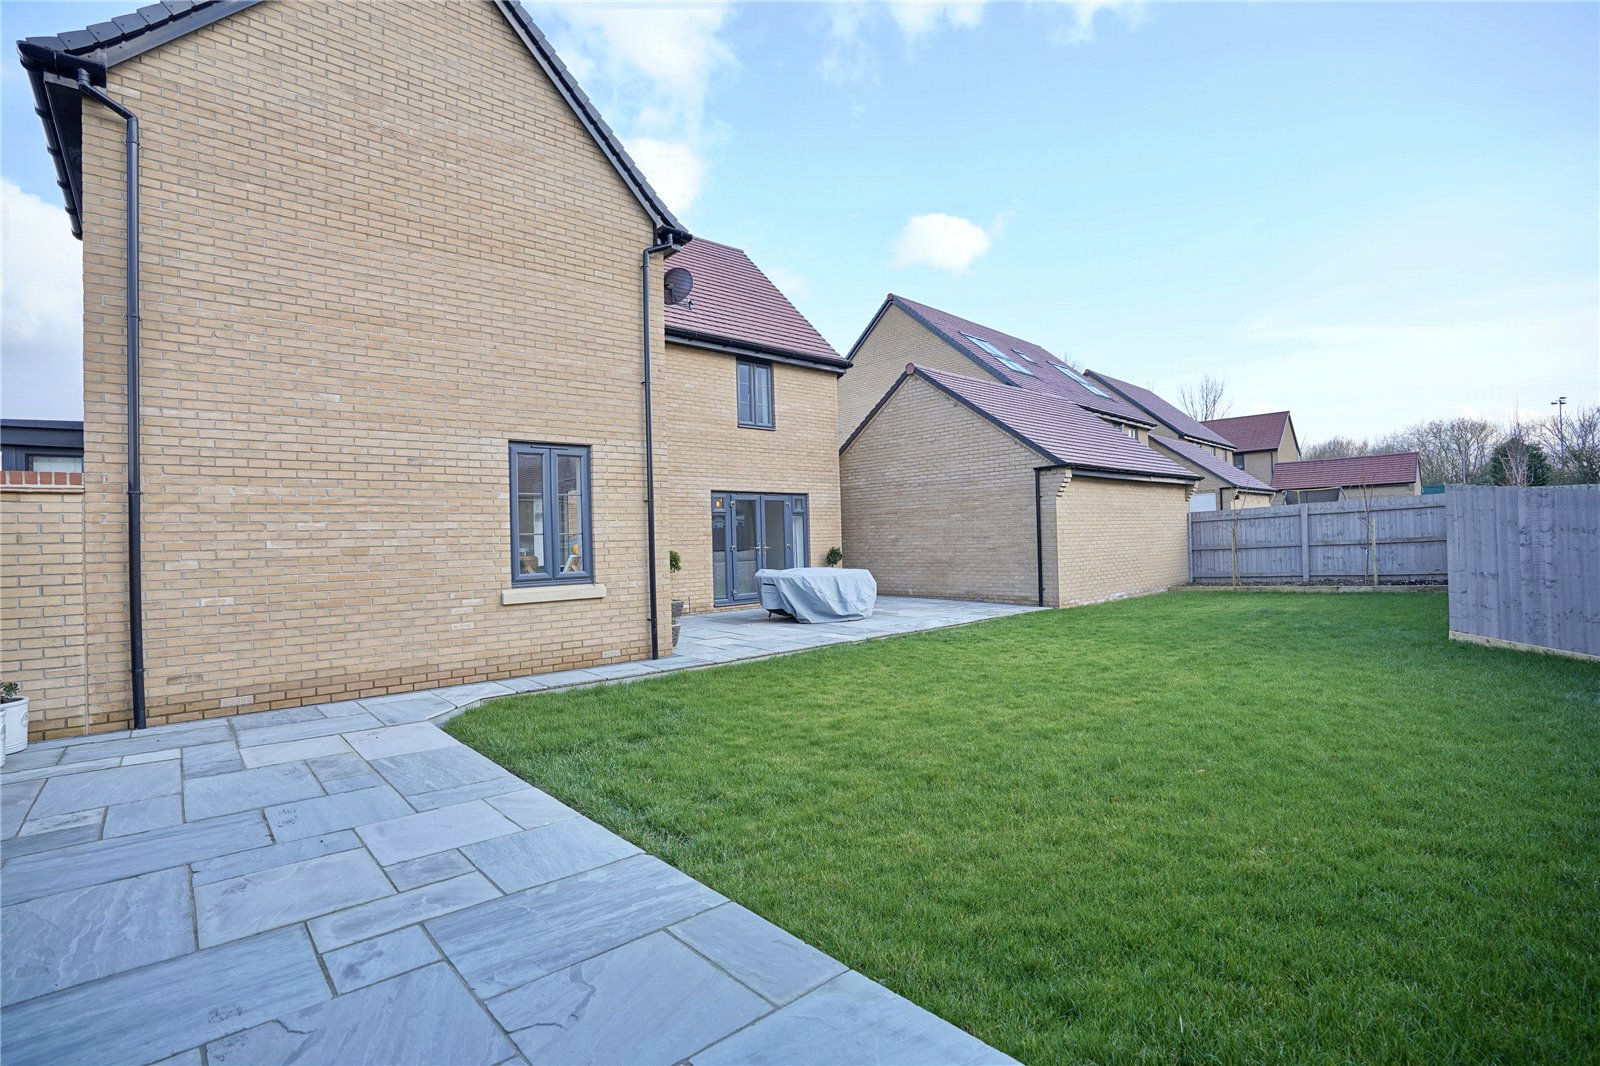 5 bed house for sale in Godmanchester, PE29 2NG 10